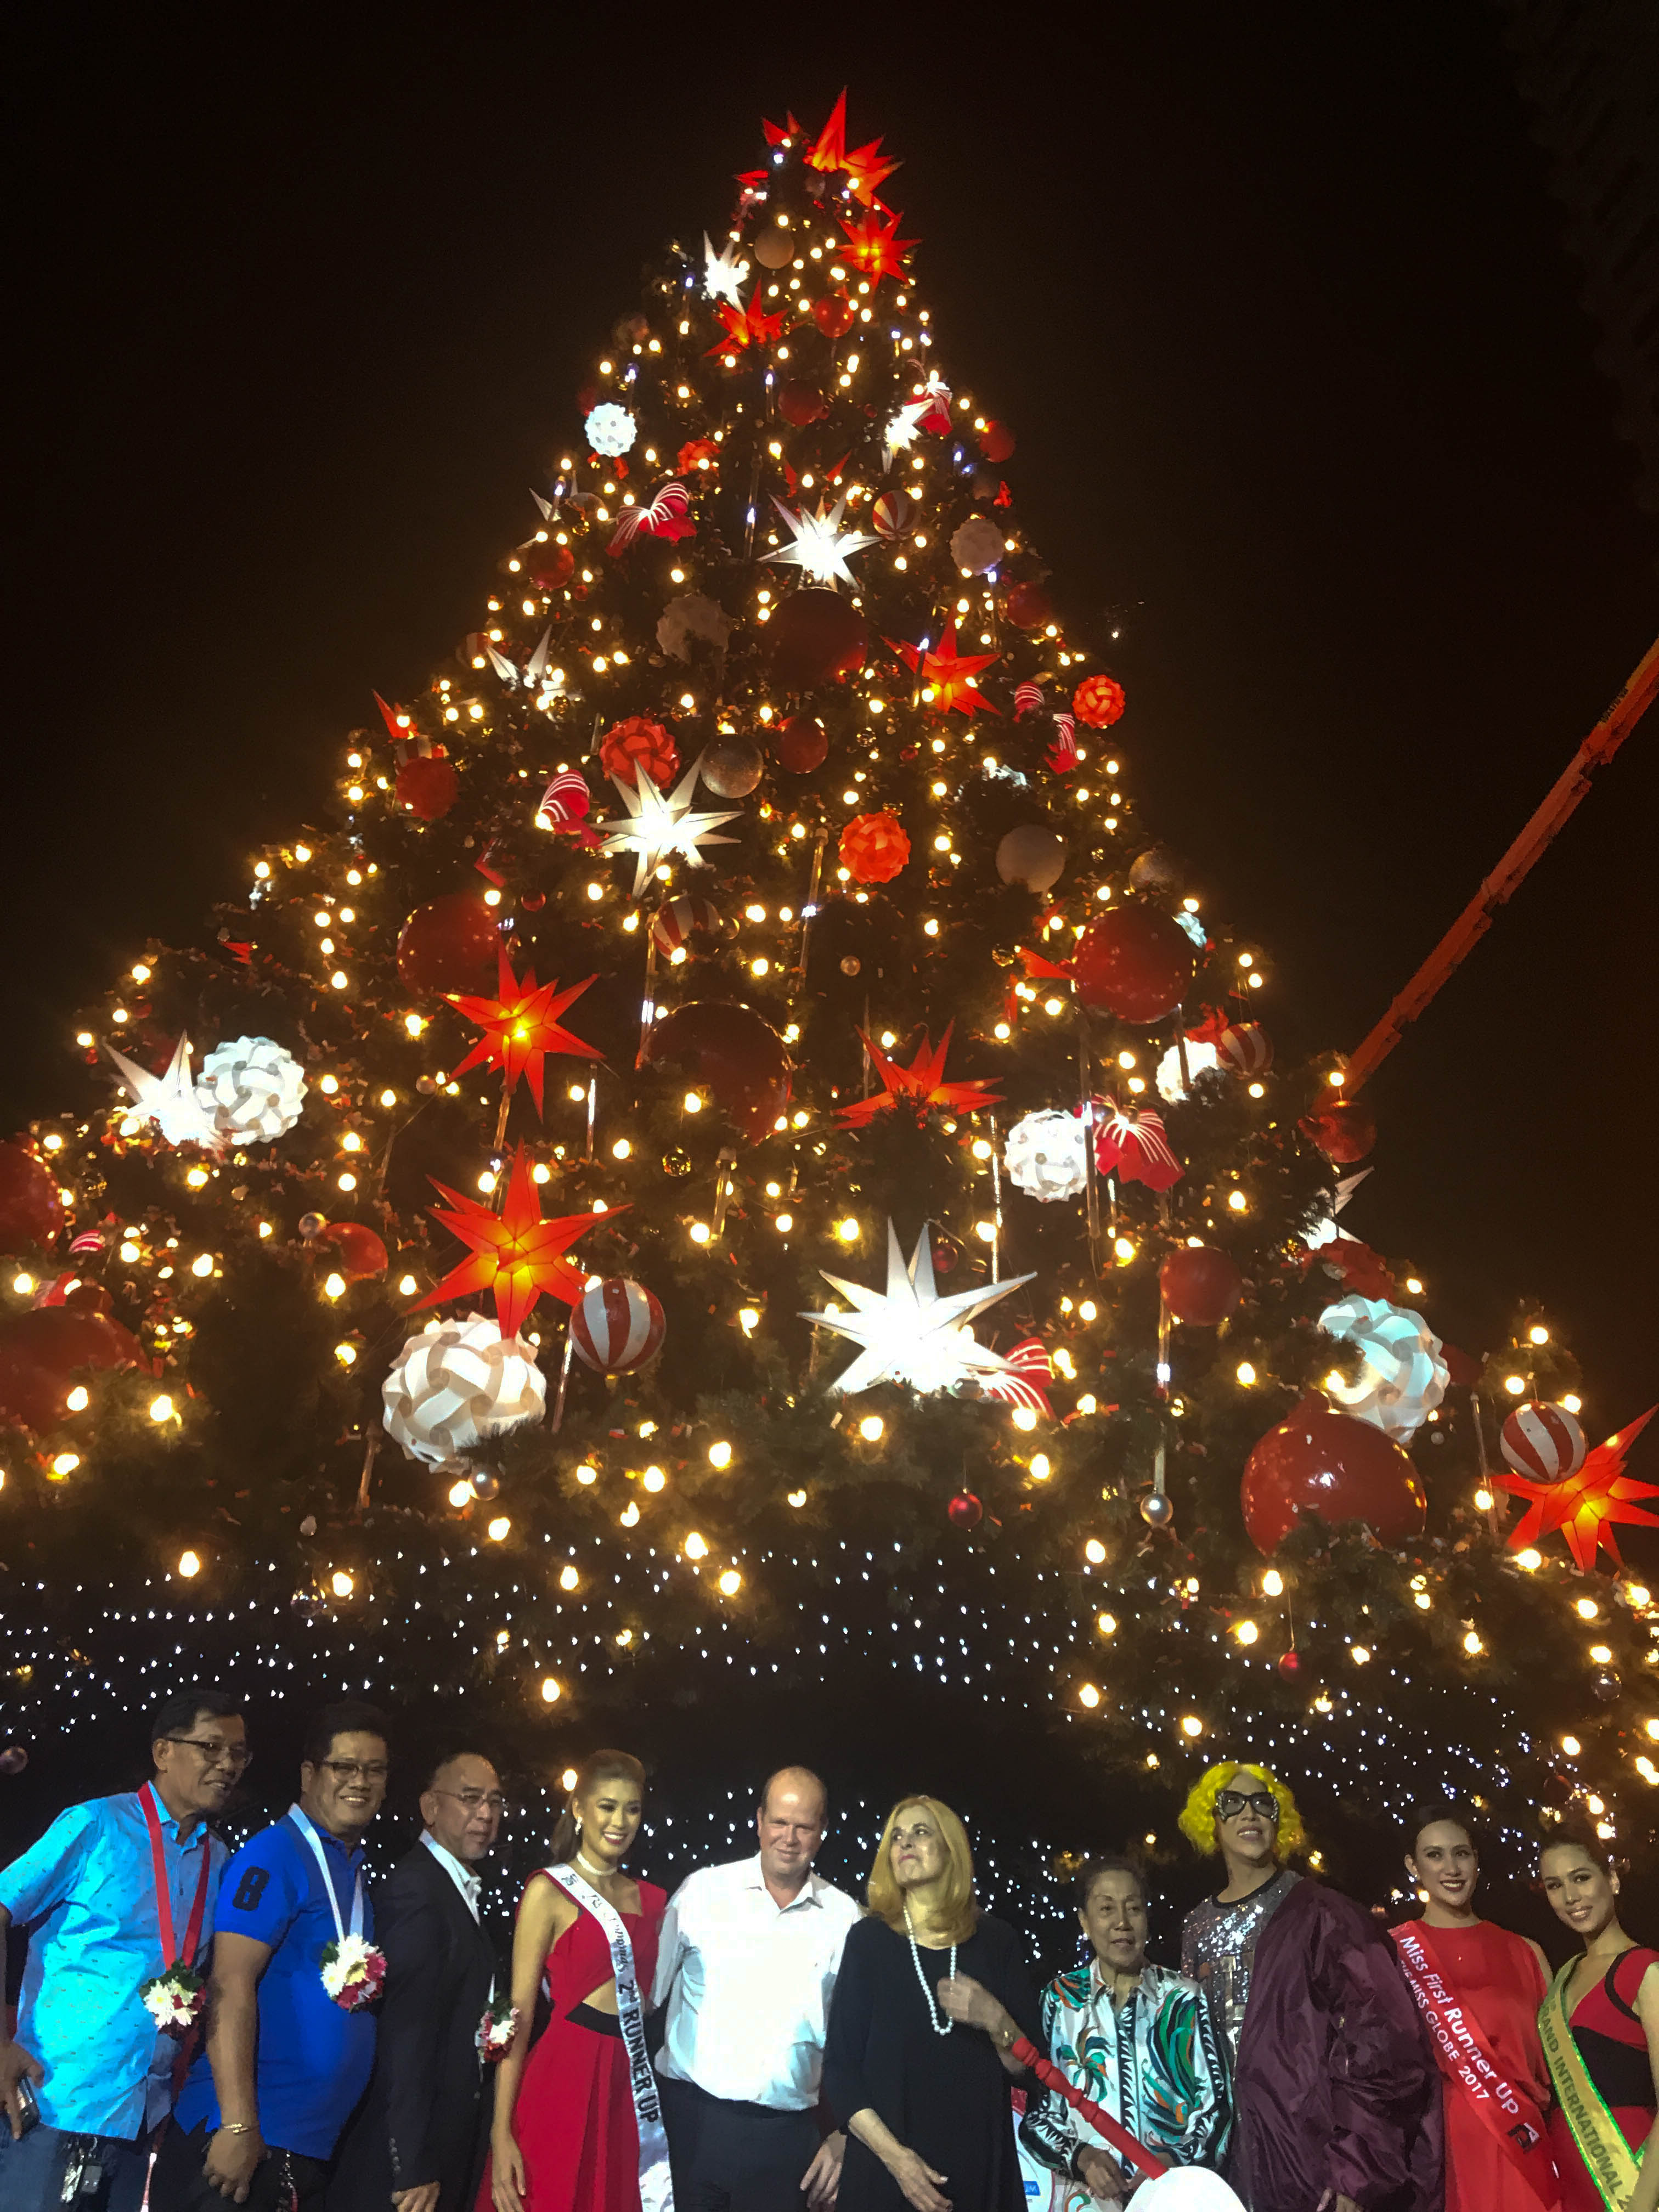 ARANETA TREE. Vice Ganda, together with the Bb Pilipinas queens and Stella Araneta lead the lighting of the big tree in Araneta Center. Photo by Precious del Valle/Rappler